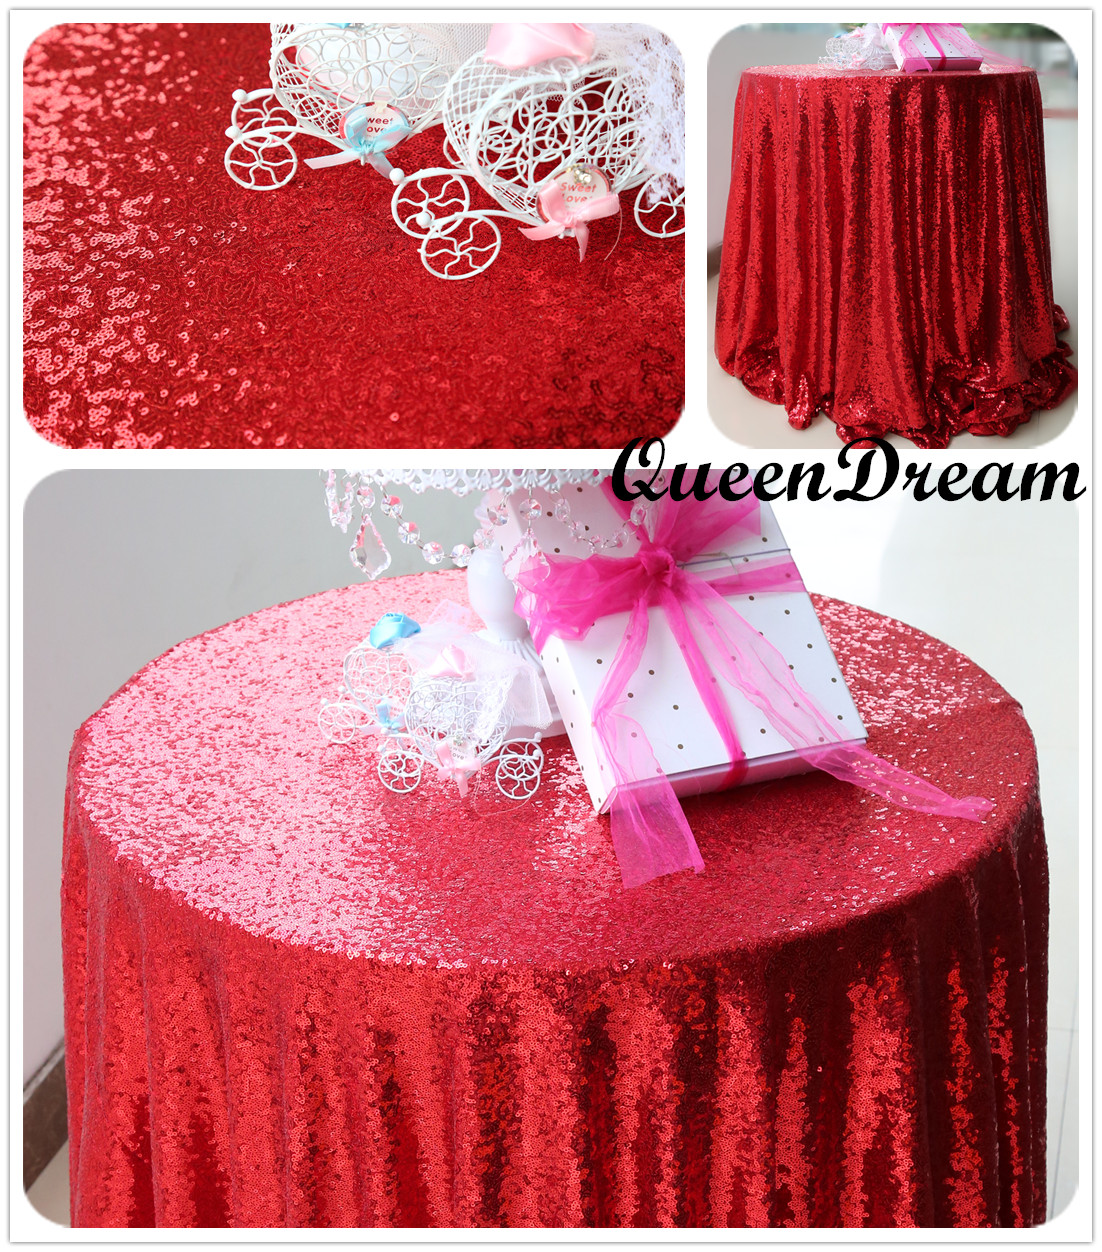 72u0027u0027 Round Red Sequin Tablecloth Glitz Sequined Table Linen